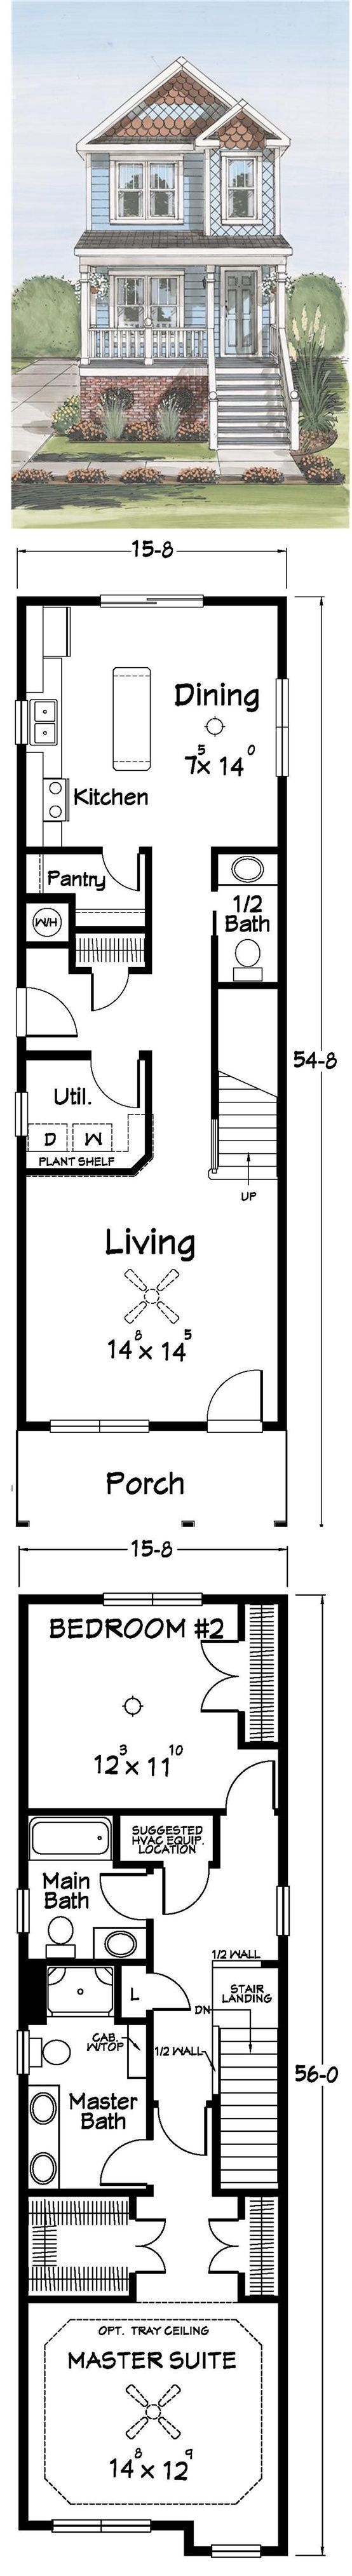 This charming, narrow lot friendly, Garden City plan provied large house square footage in a small frontage design. Stylishly appointed, both inside and out, these two story plans can make the most of your home site.: